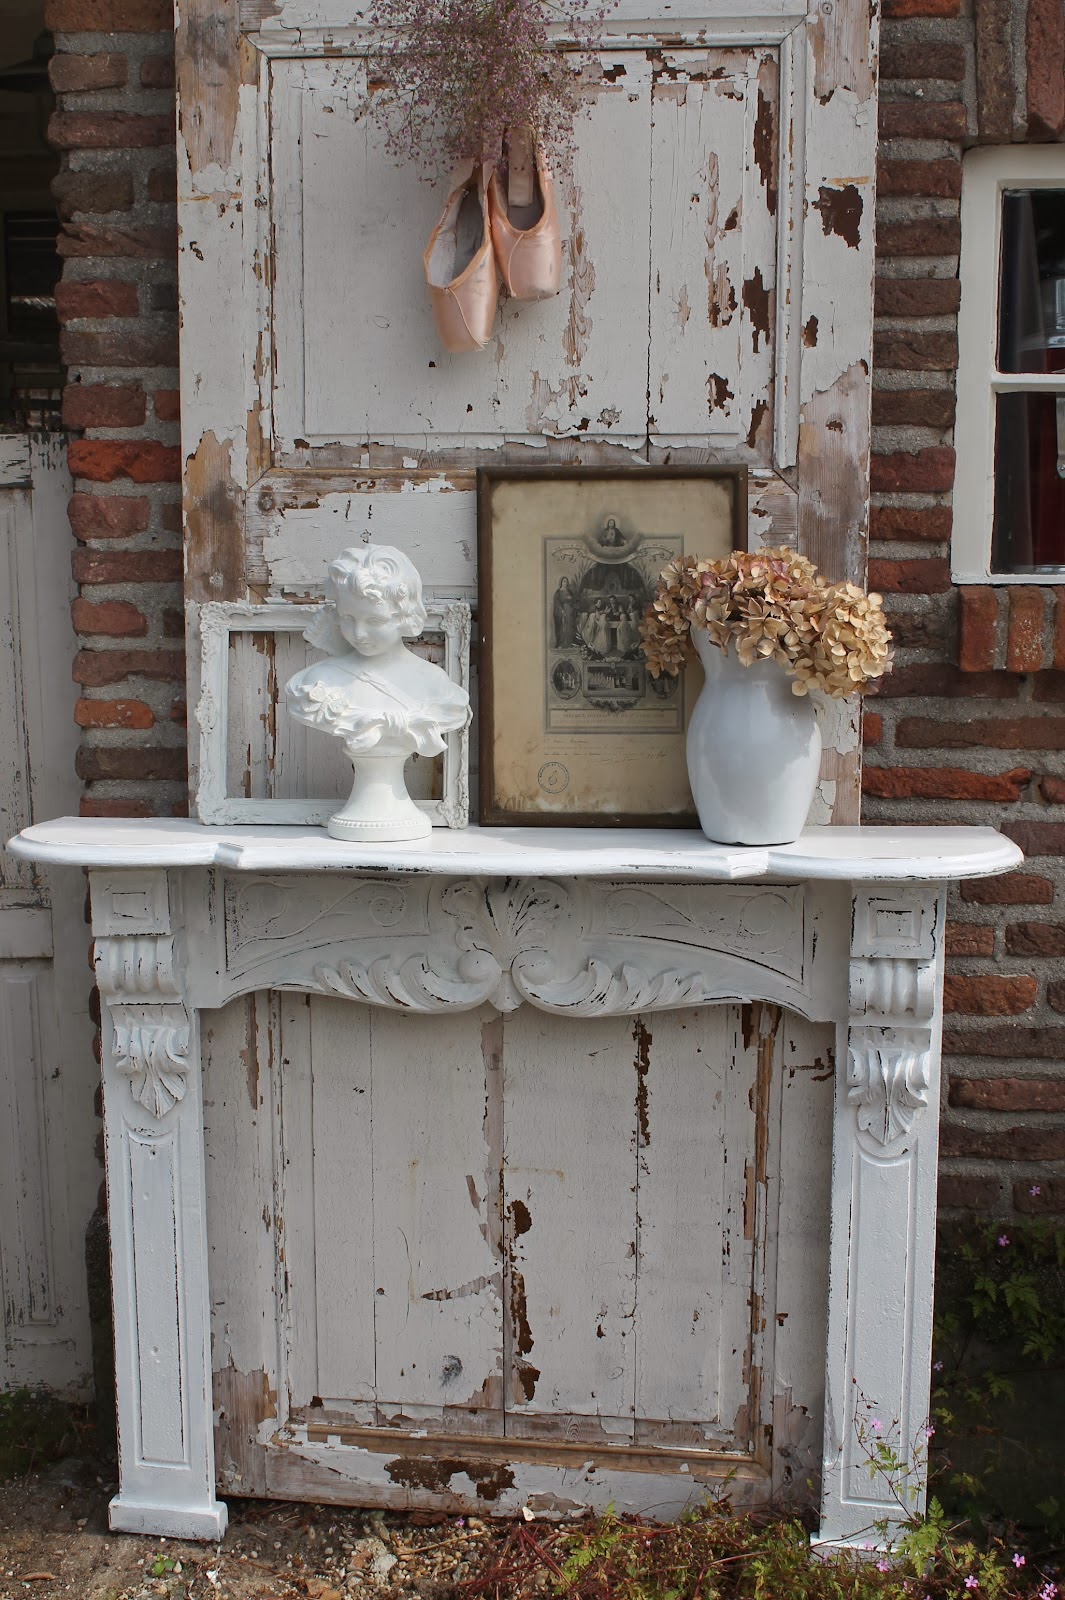 When Shabby Loves Chic Deco Un Interieur Boheme: Lo Shabby Di Mila: We Love Shabby Chic